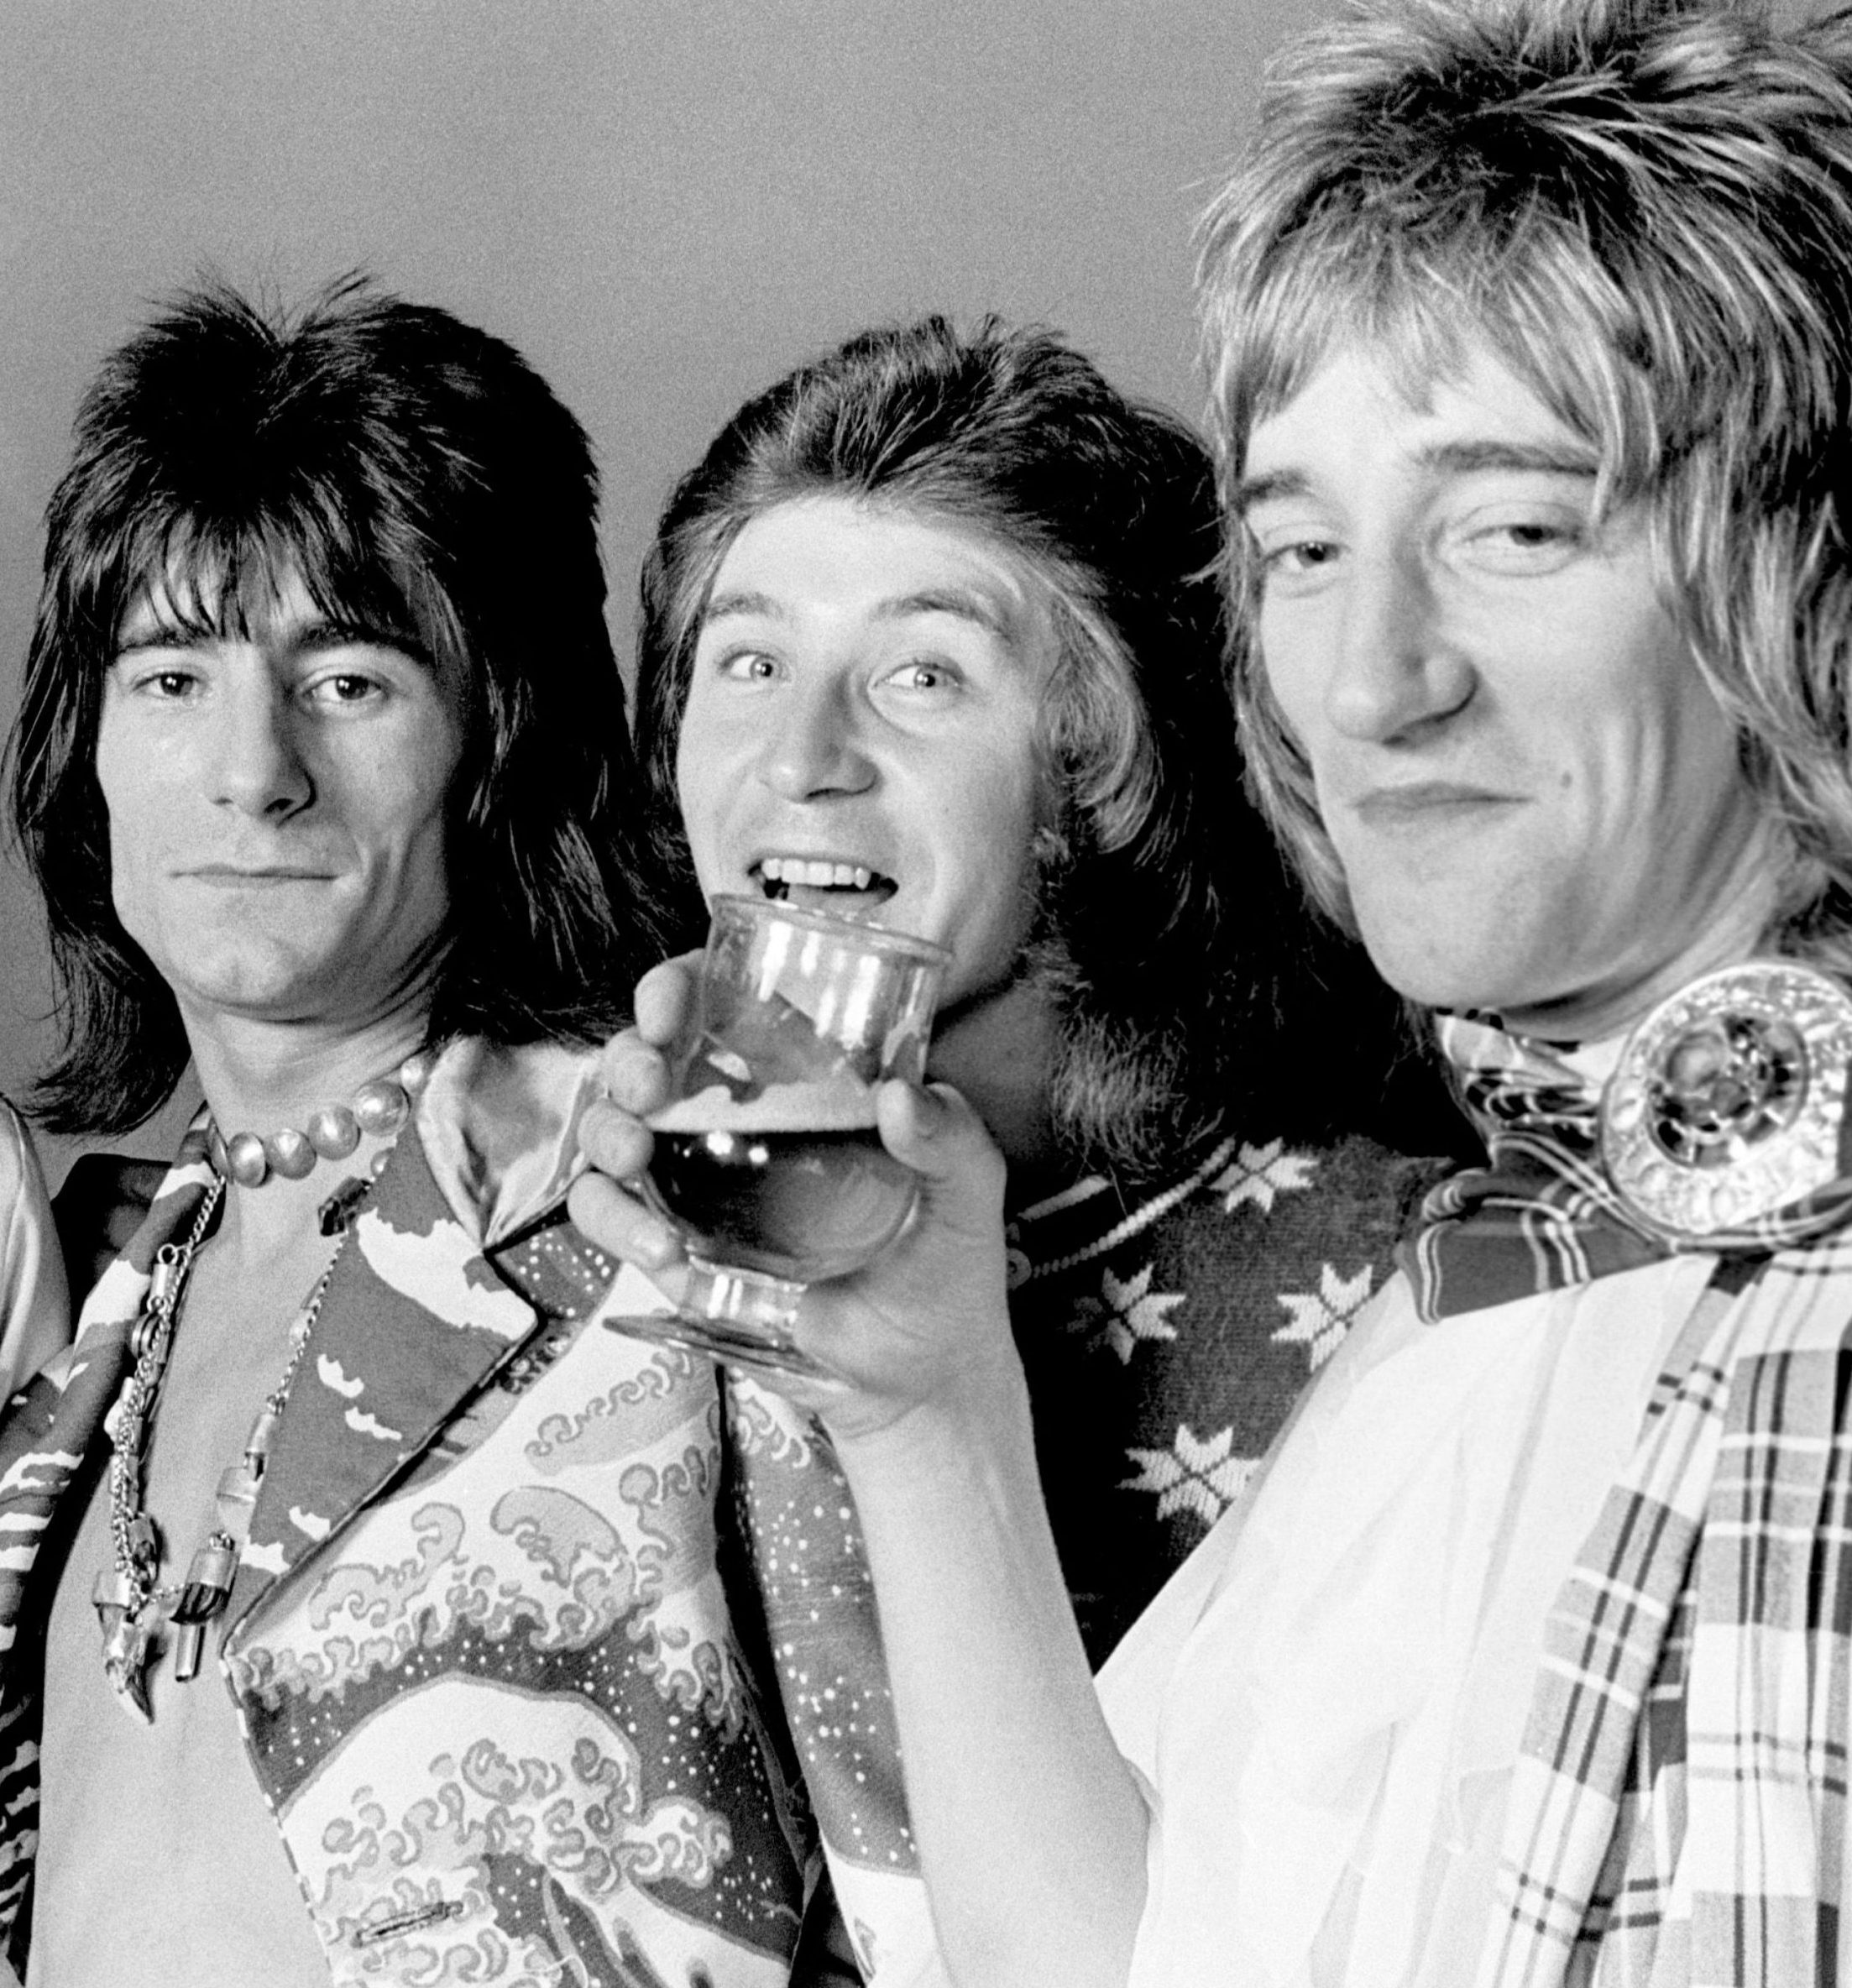 Sir Rod Stewart to reunited with The Faces